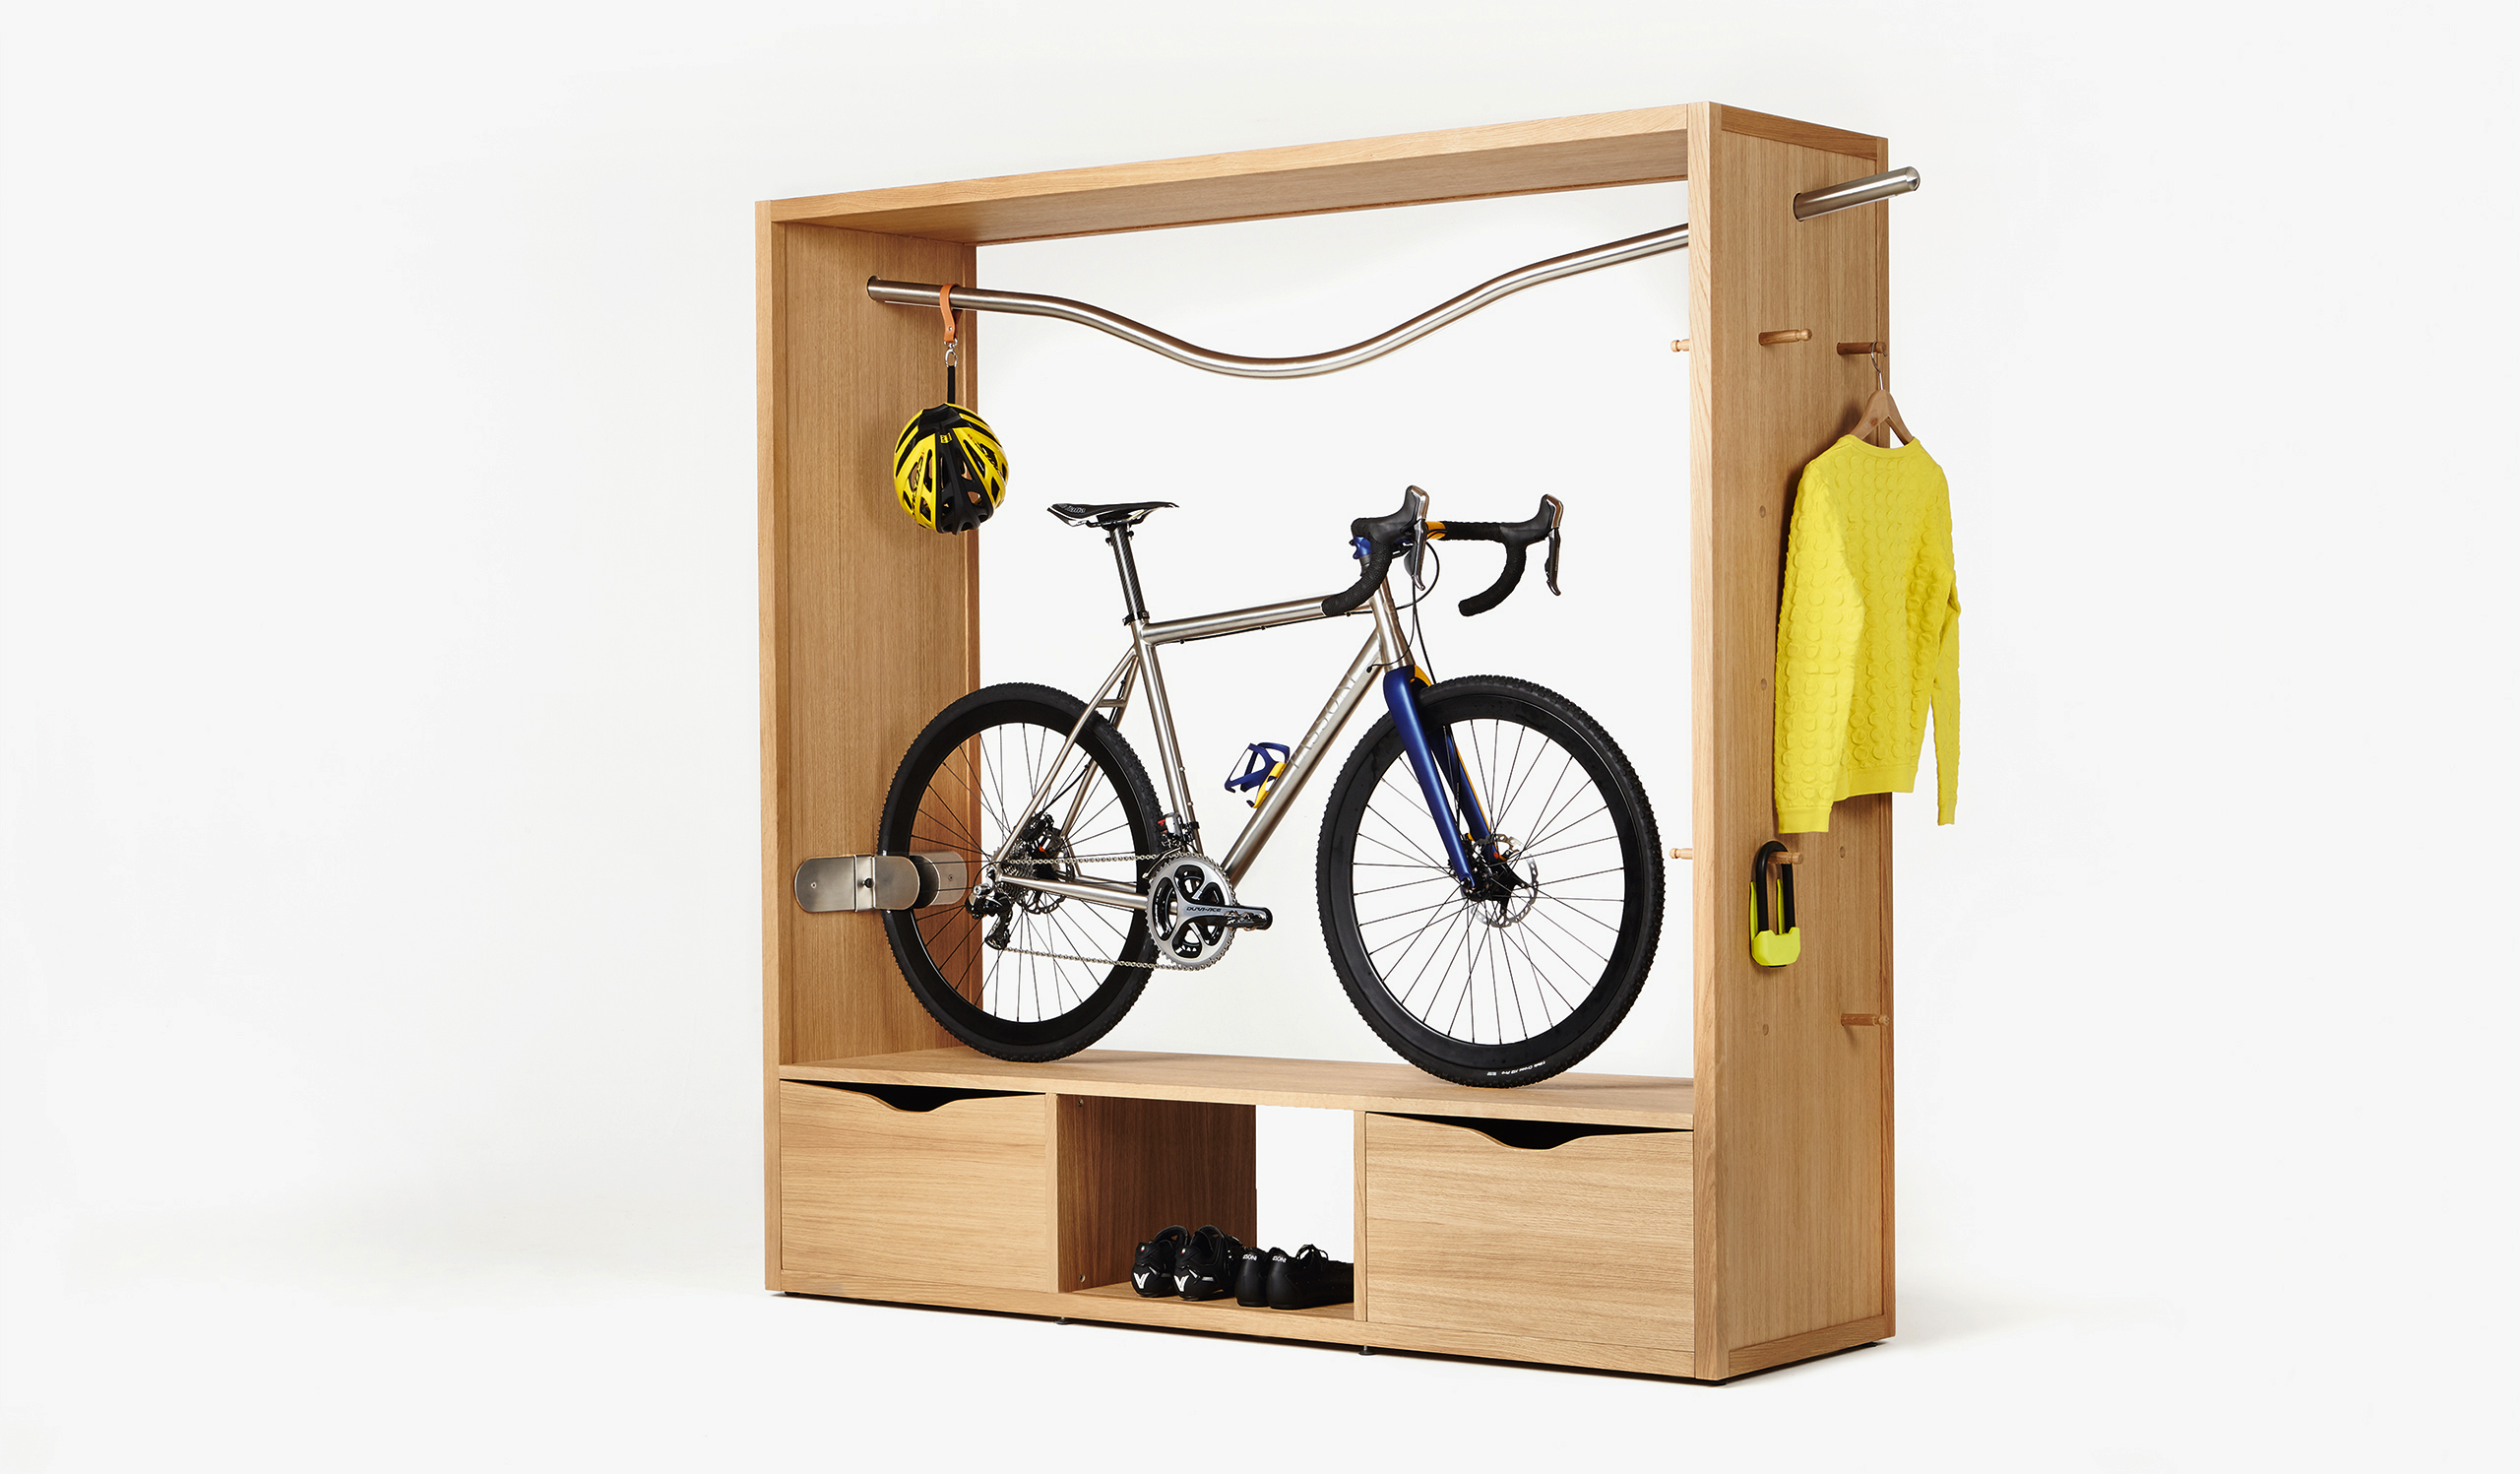 Bike_Shelf_02.jpg